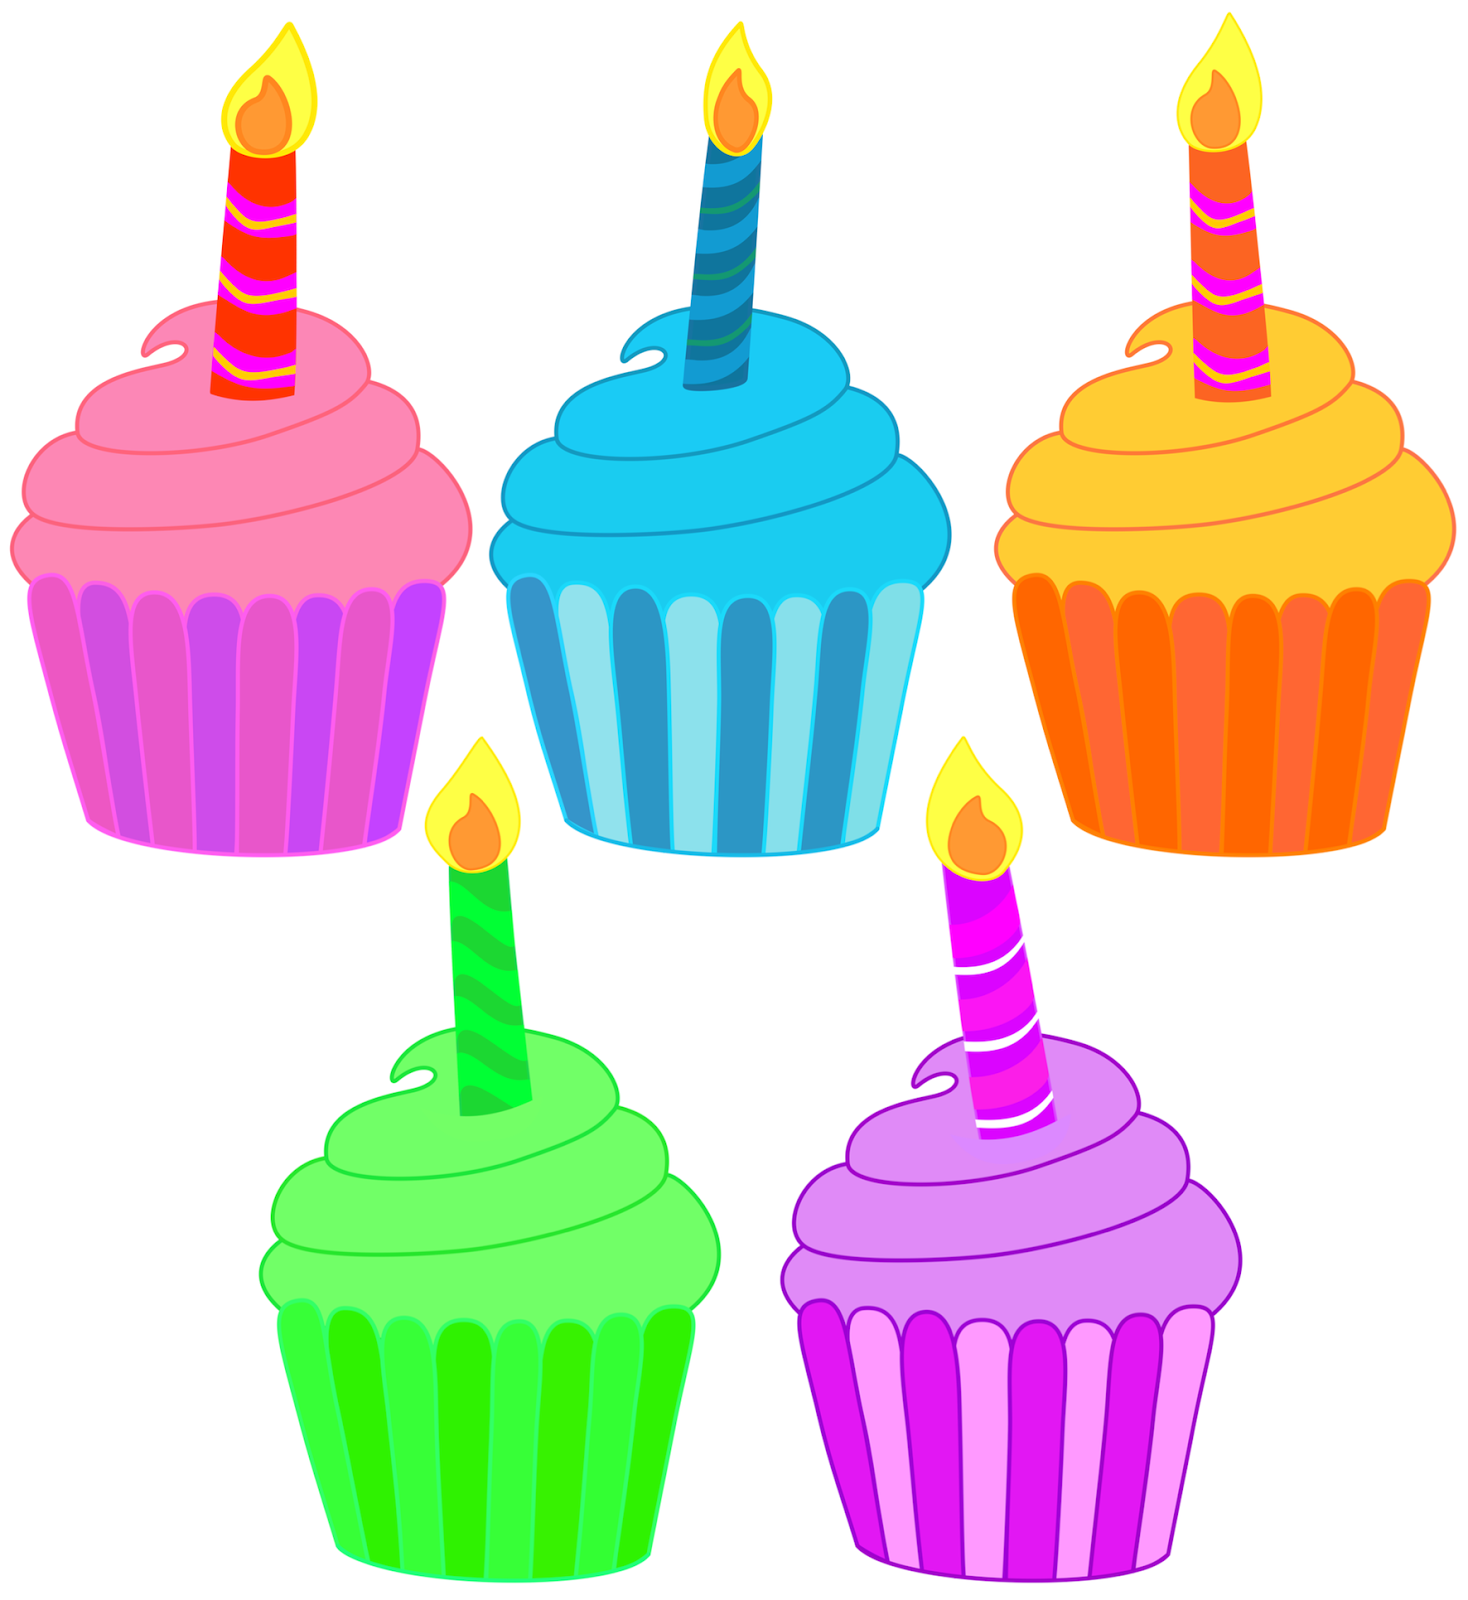 Free candle cliparts download. Candles clipart birthday cupcake